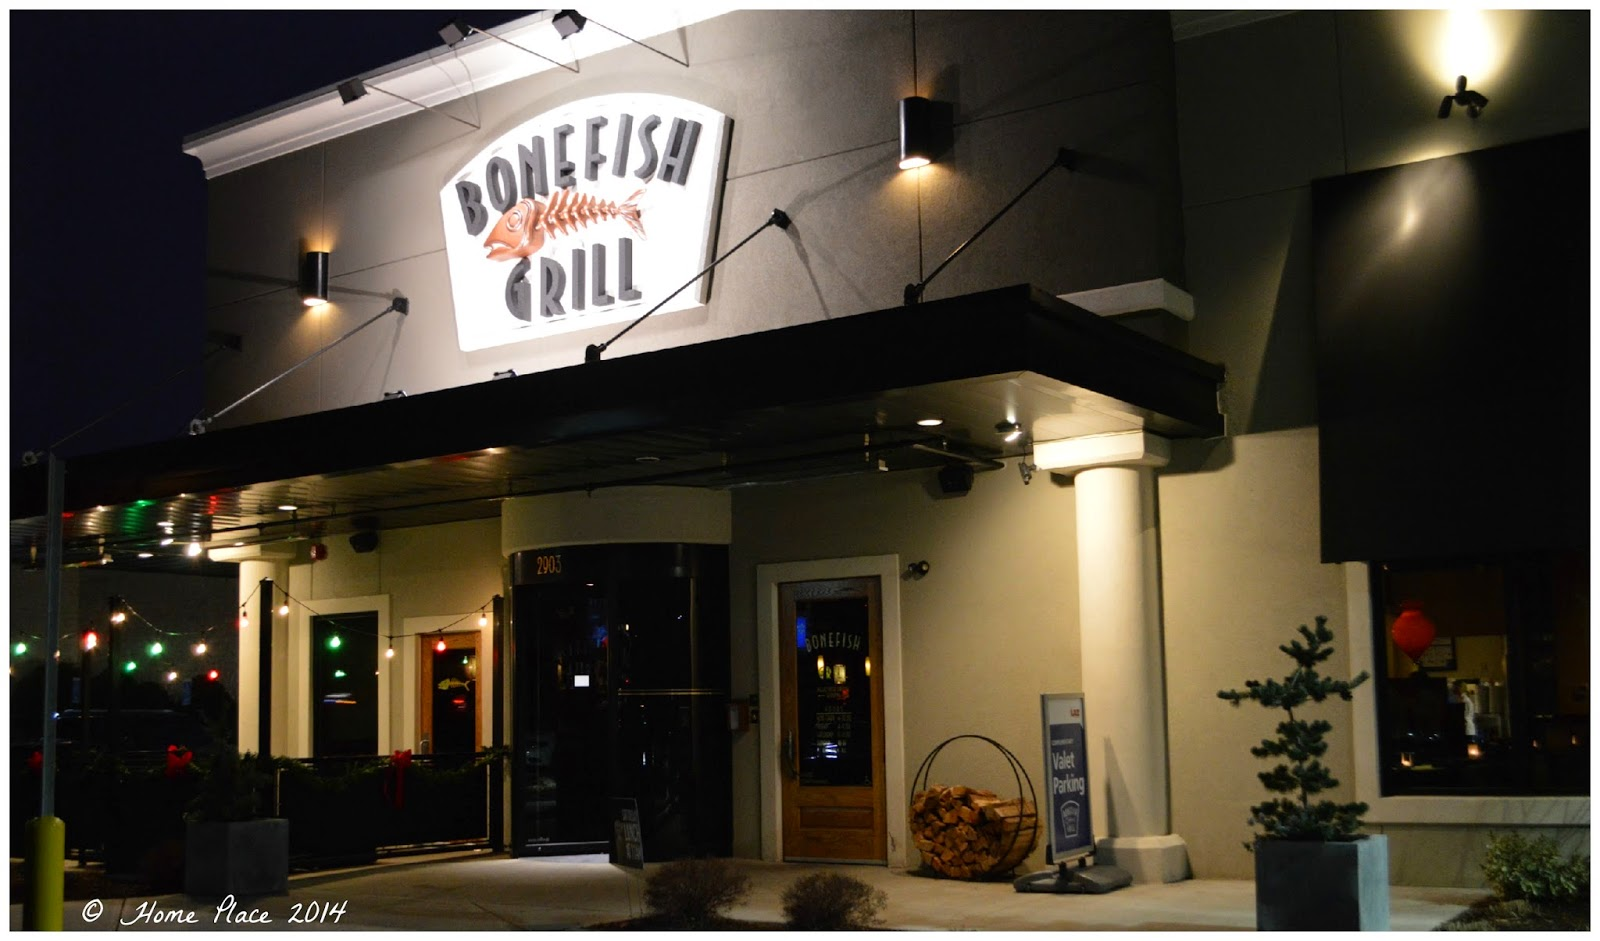 Home place bonefish grill in newington ct gocolossal for Bone fish and grill